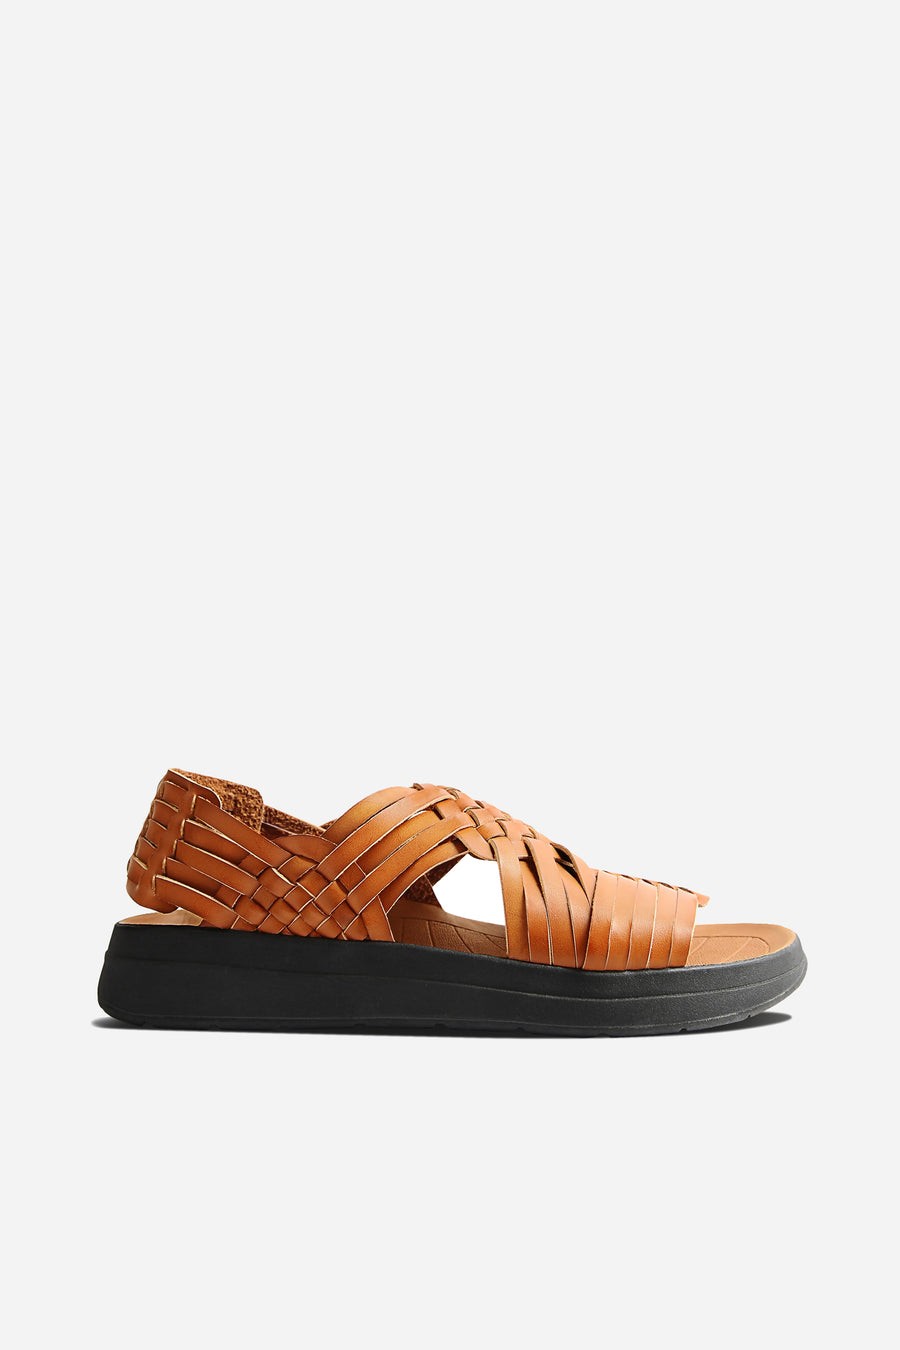 MALIBU Canyon Classic Vegan Leather/EVA | HAVN